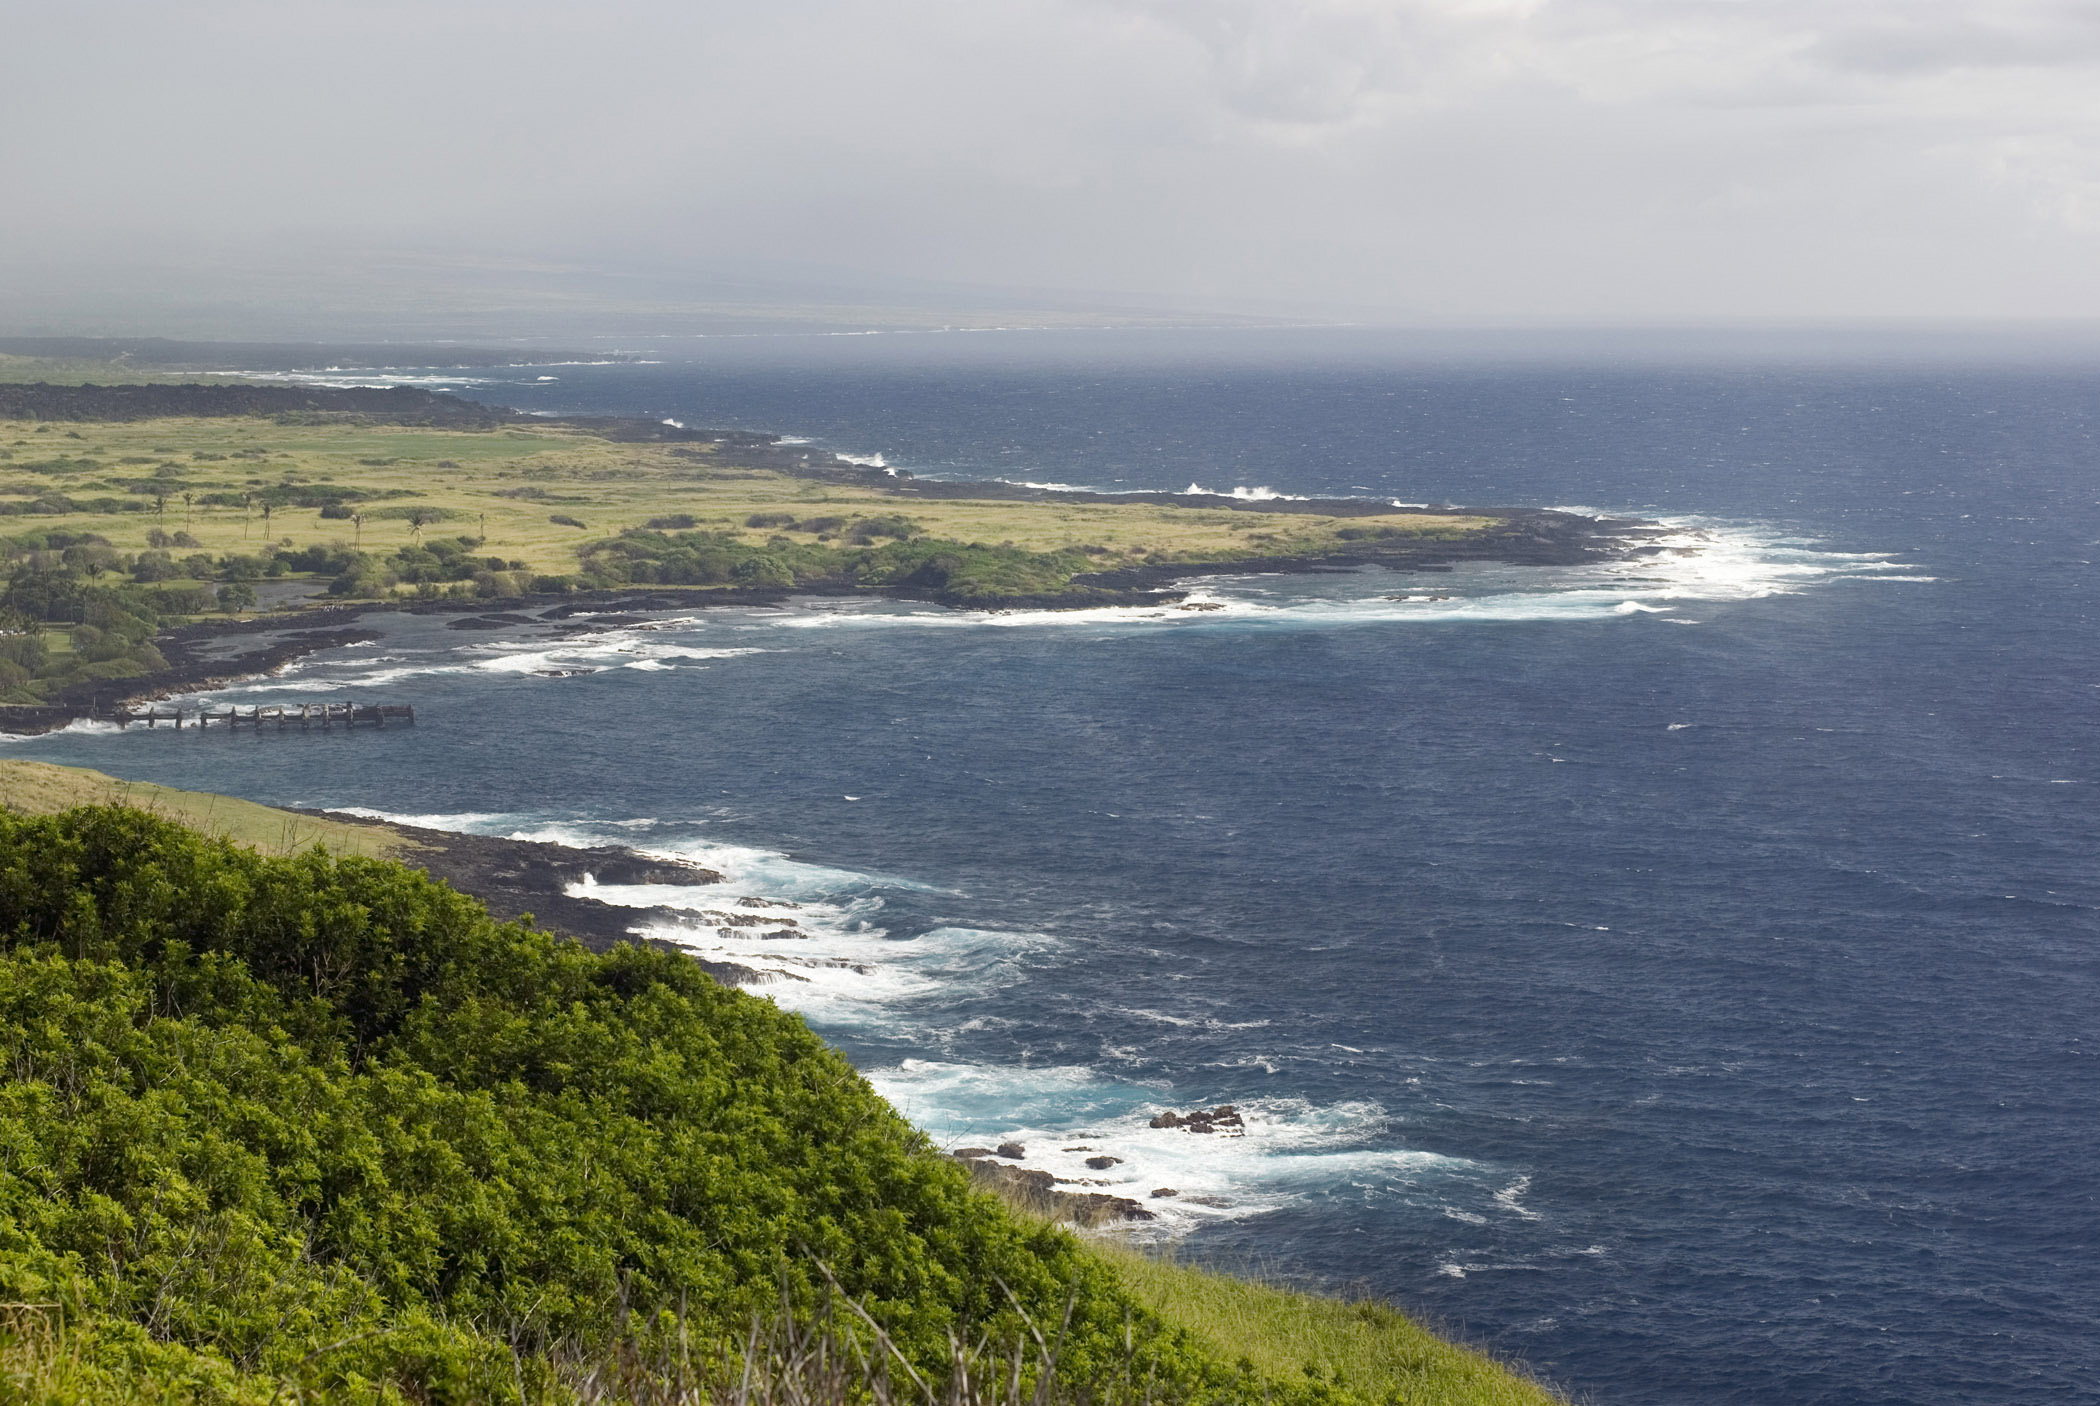 Scenic view along the lush green Big Island coastline, Hawaii, USA, a popular tourist destination